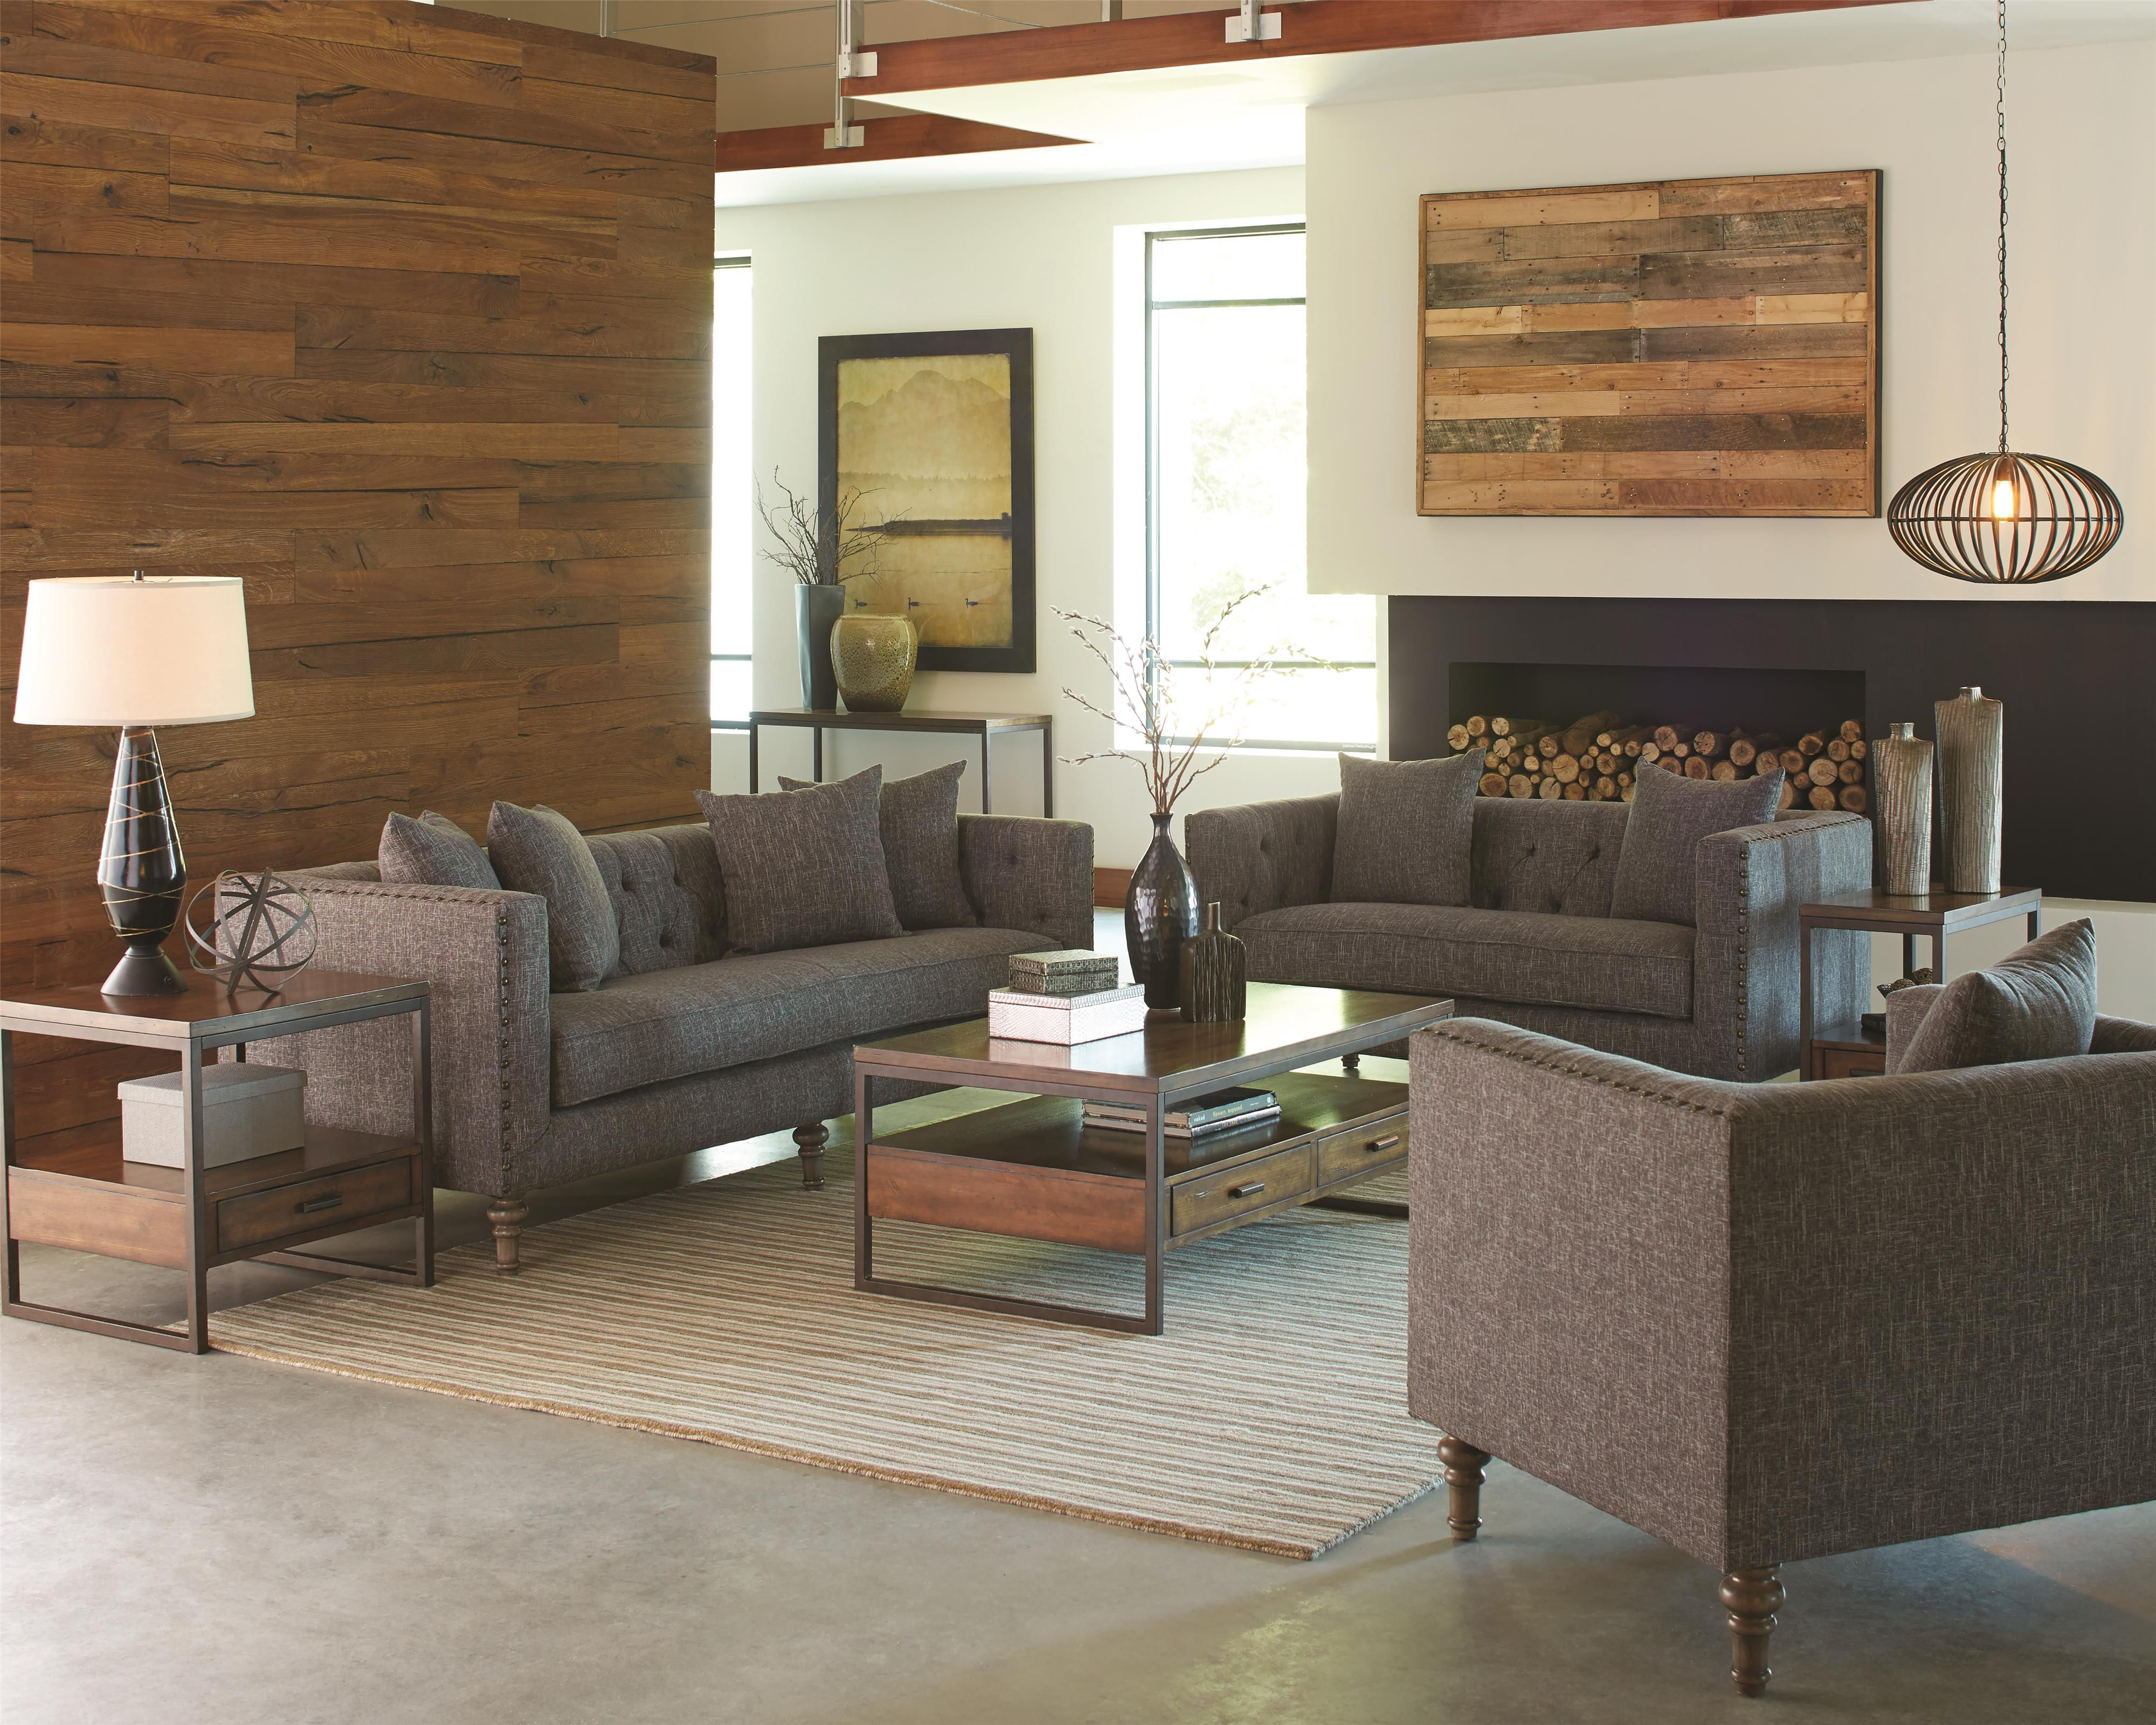 Ellery Sofa With Traditional Industrial Style By Coaster Rustic